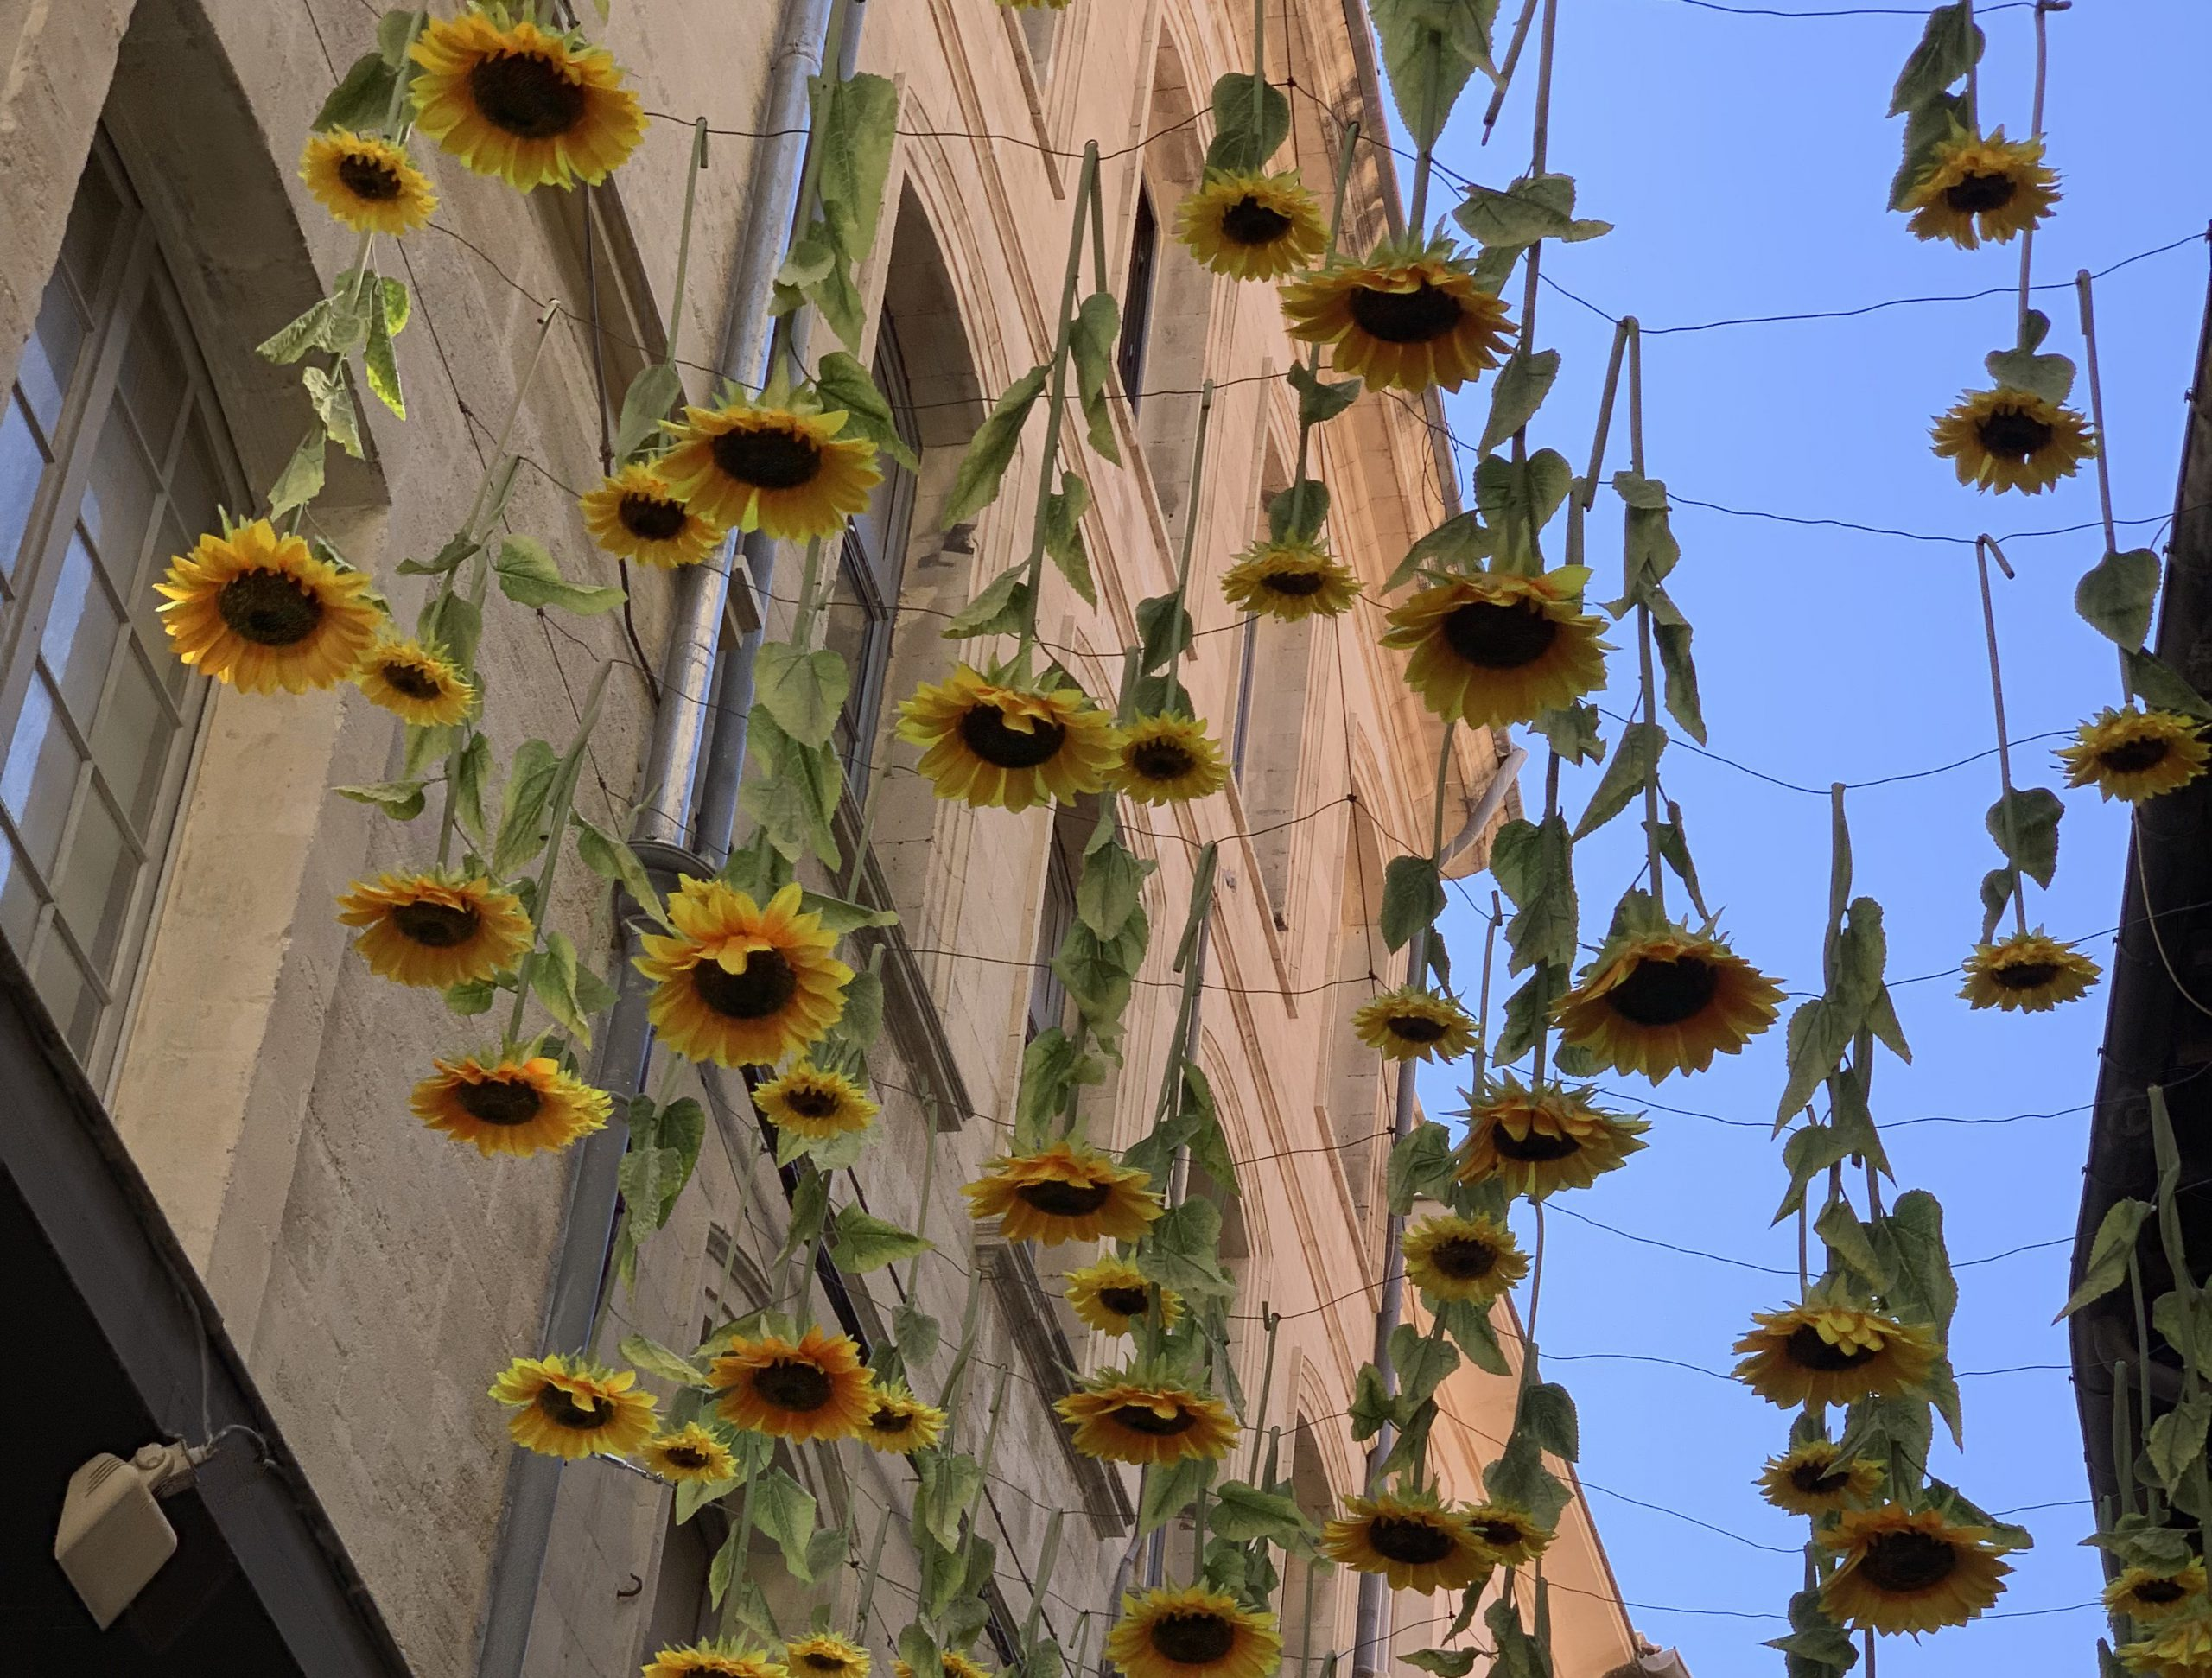 Avignon Sunflowers